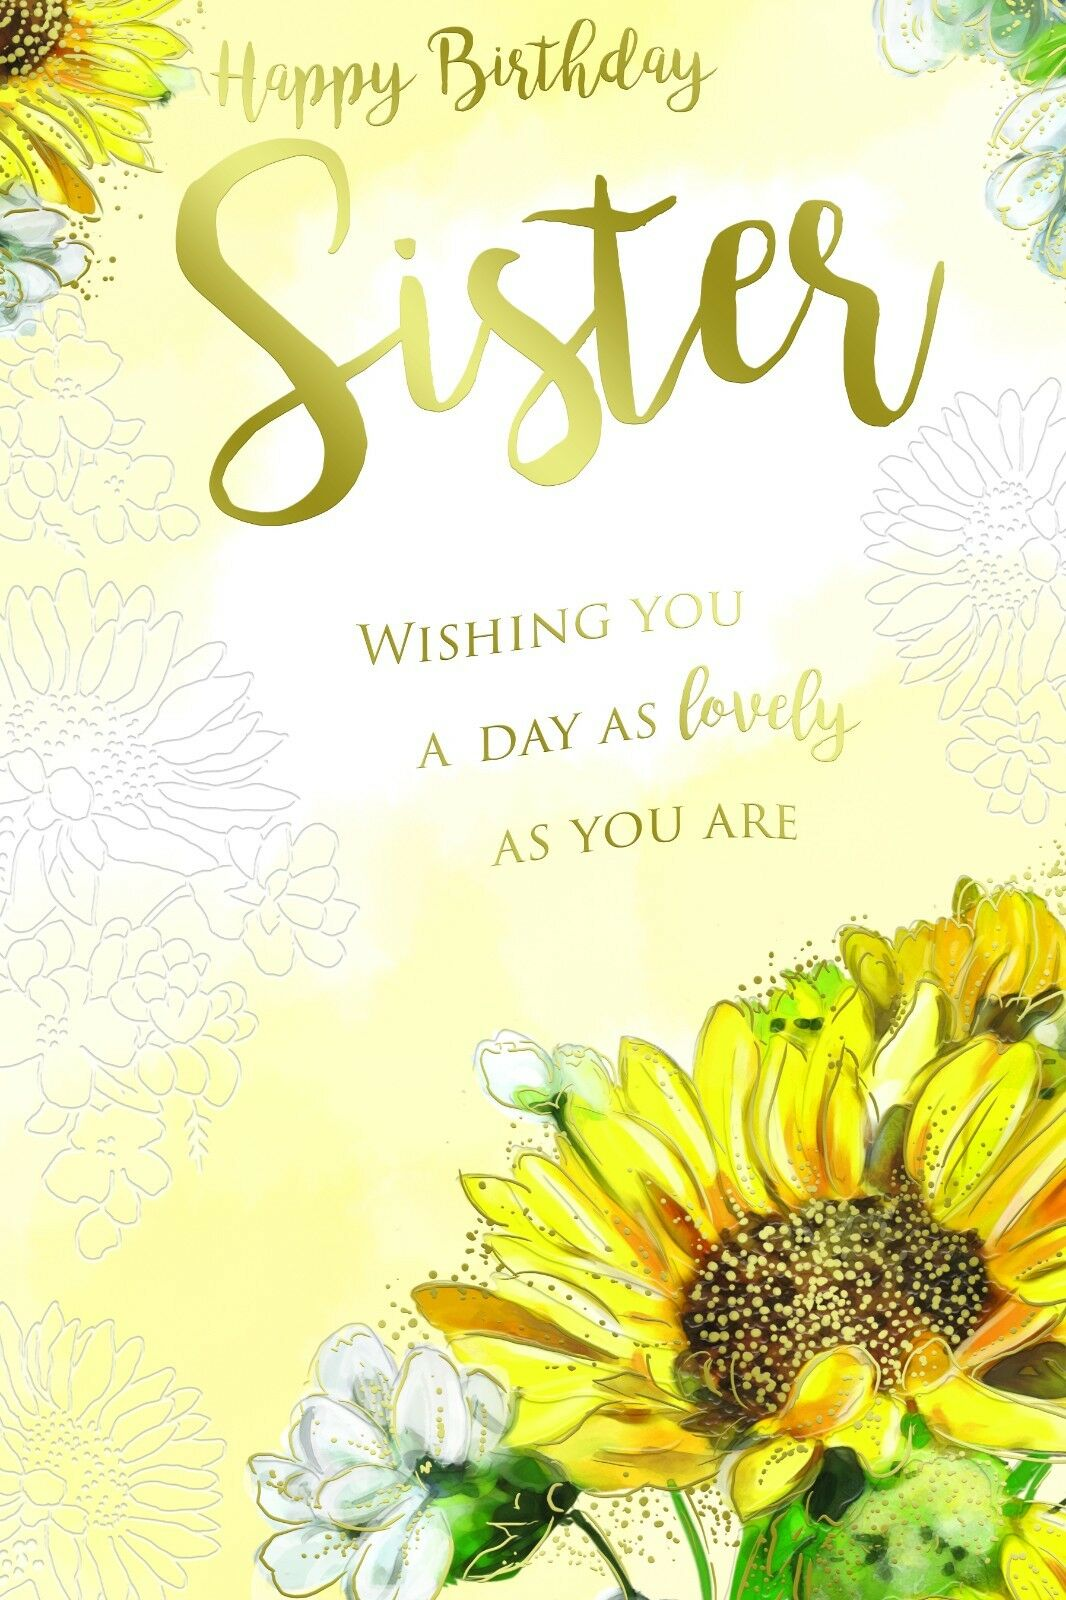 Sister Bright Sunflower Flowers Design Happy Birthday With A